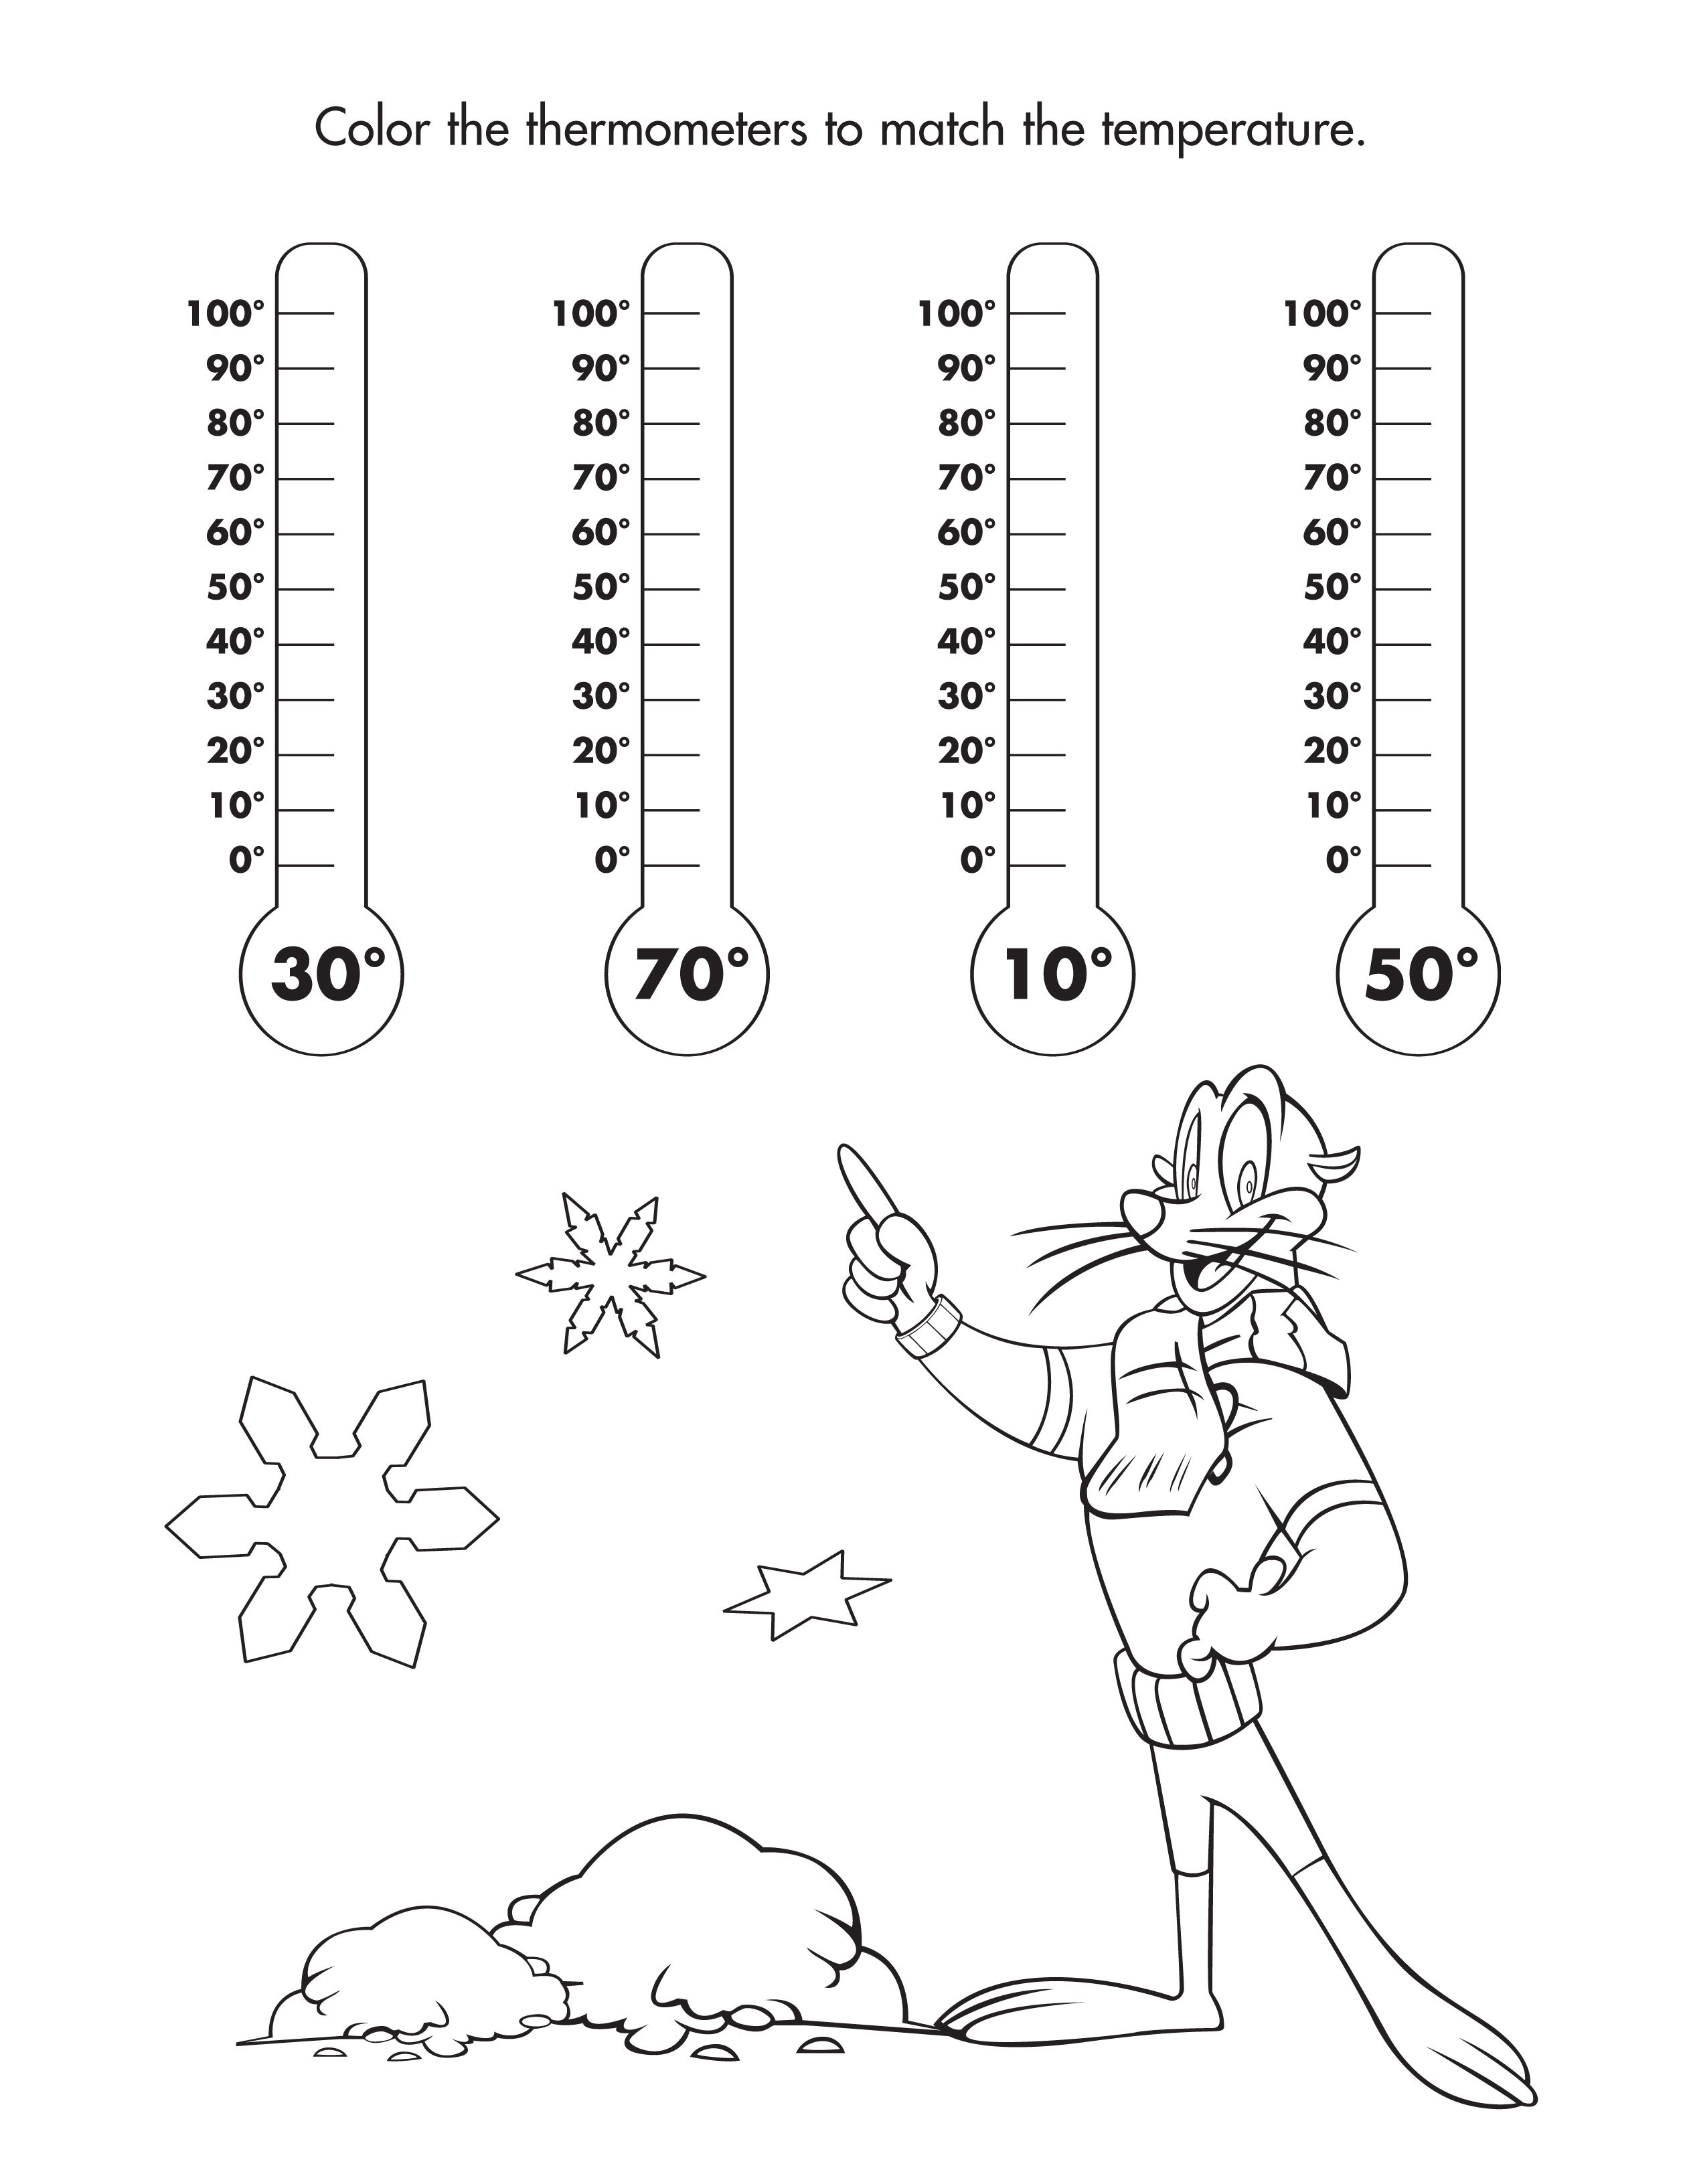 Color The Thermometers With The Correct Temperature